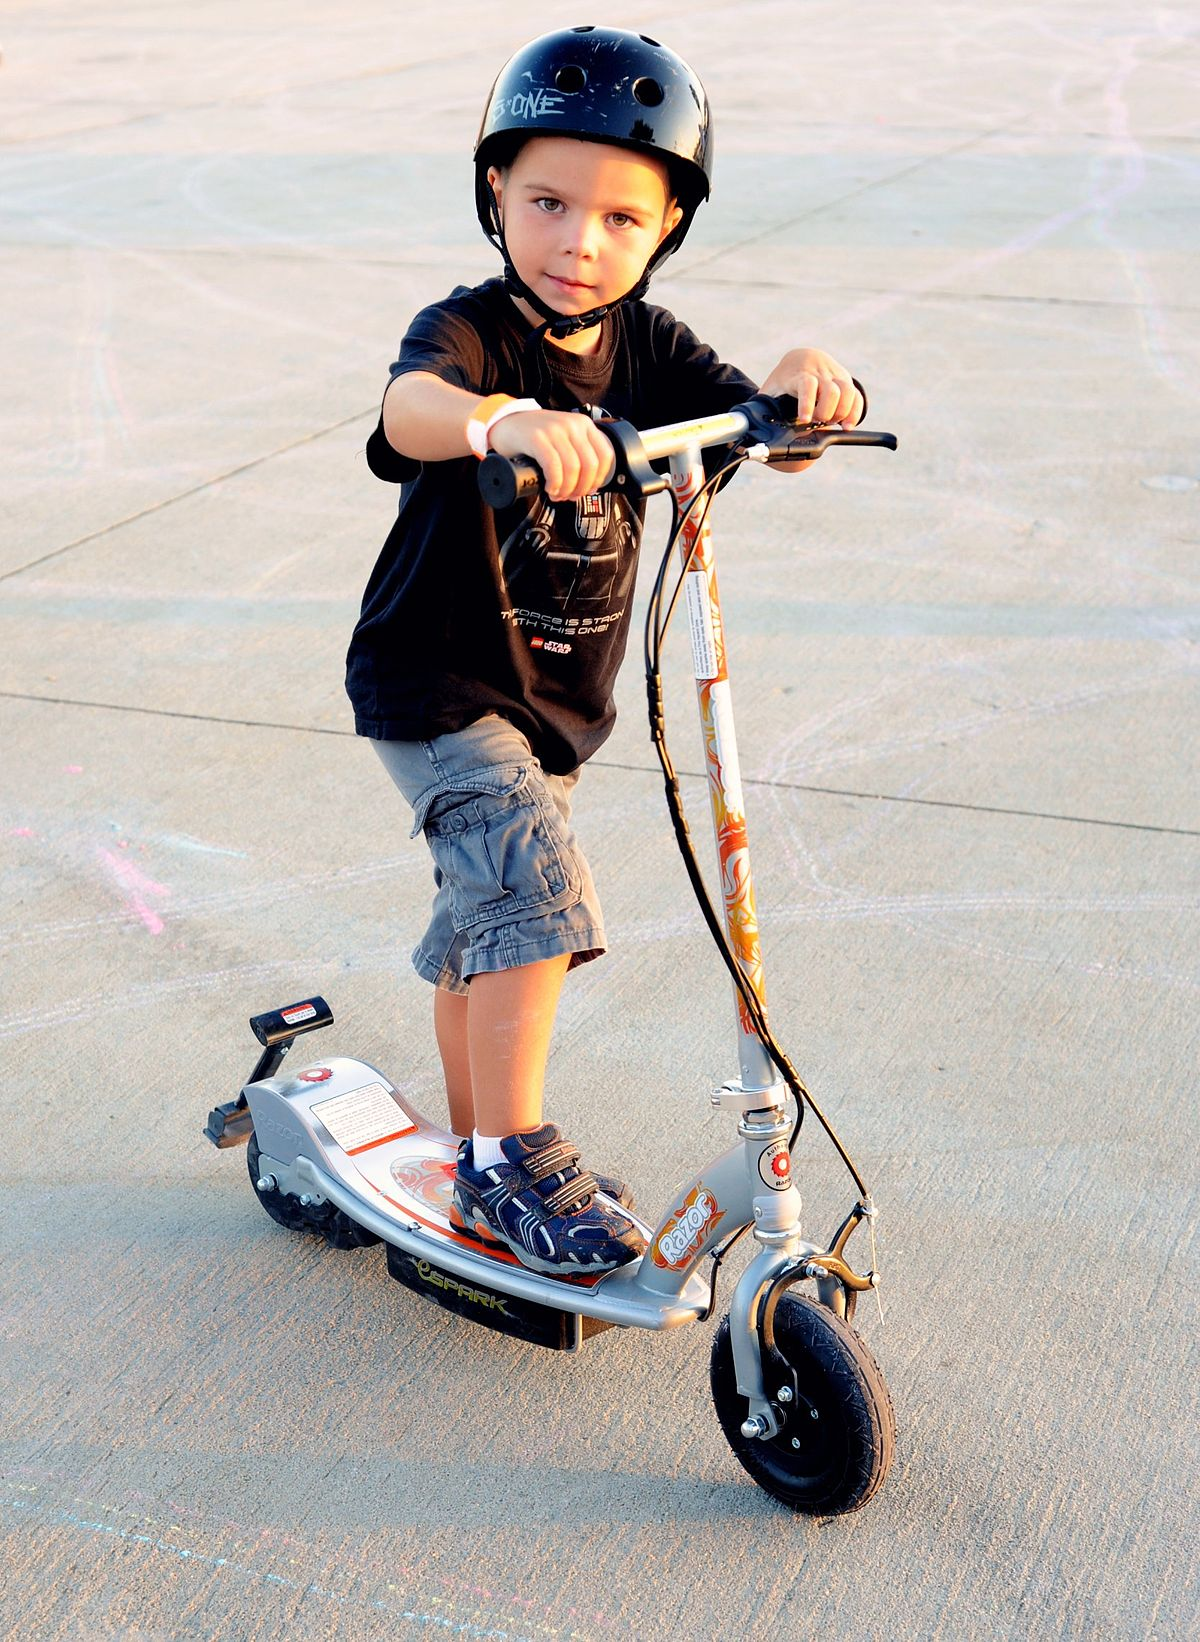 Walmart Toys Scooters For Boys : Motorized scooter wikipedia